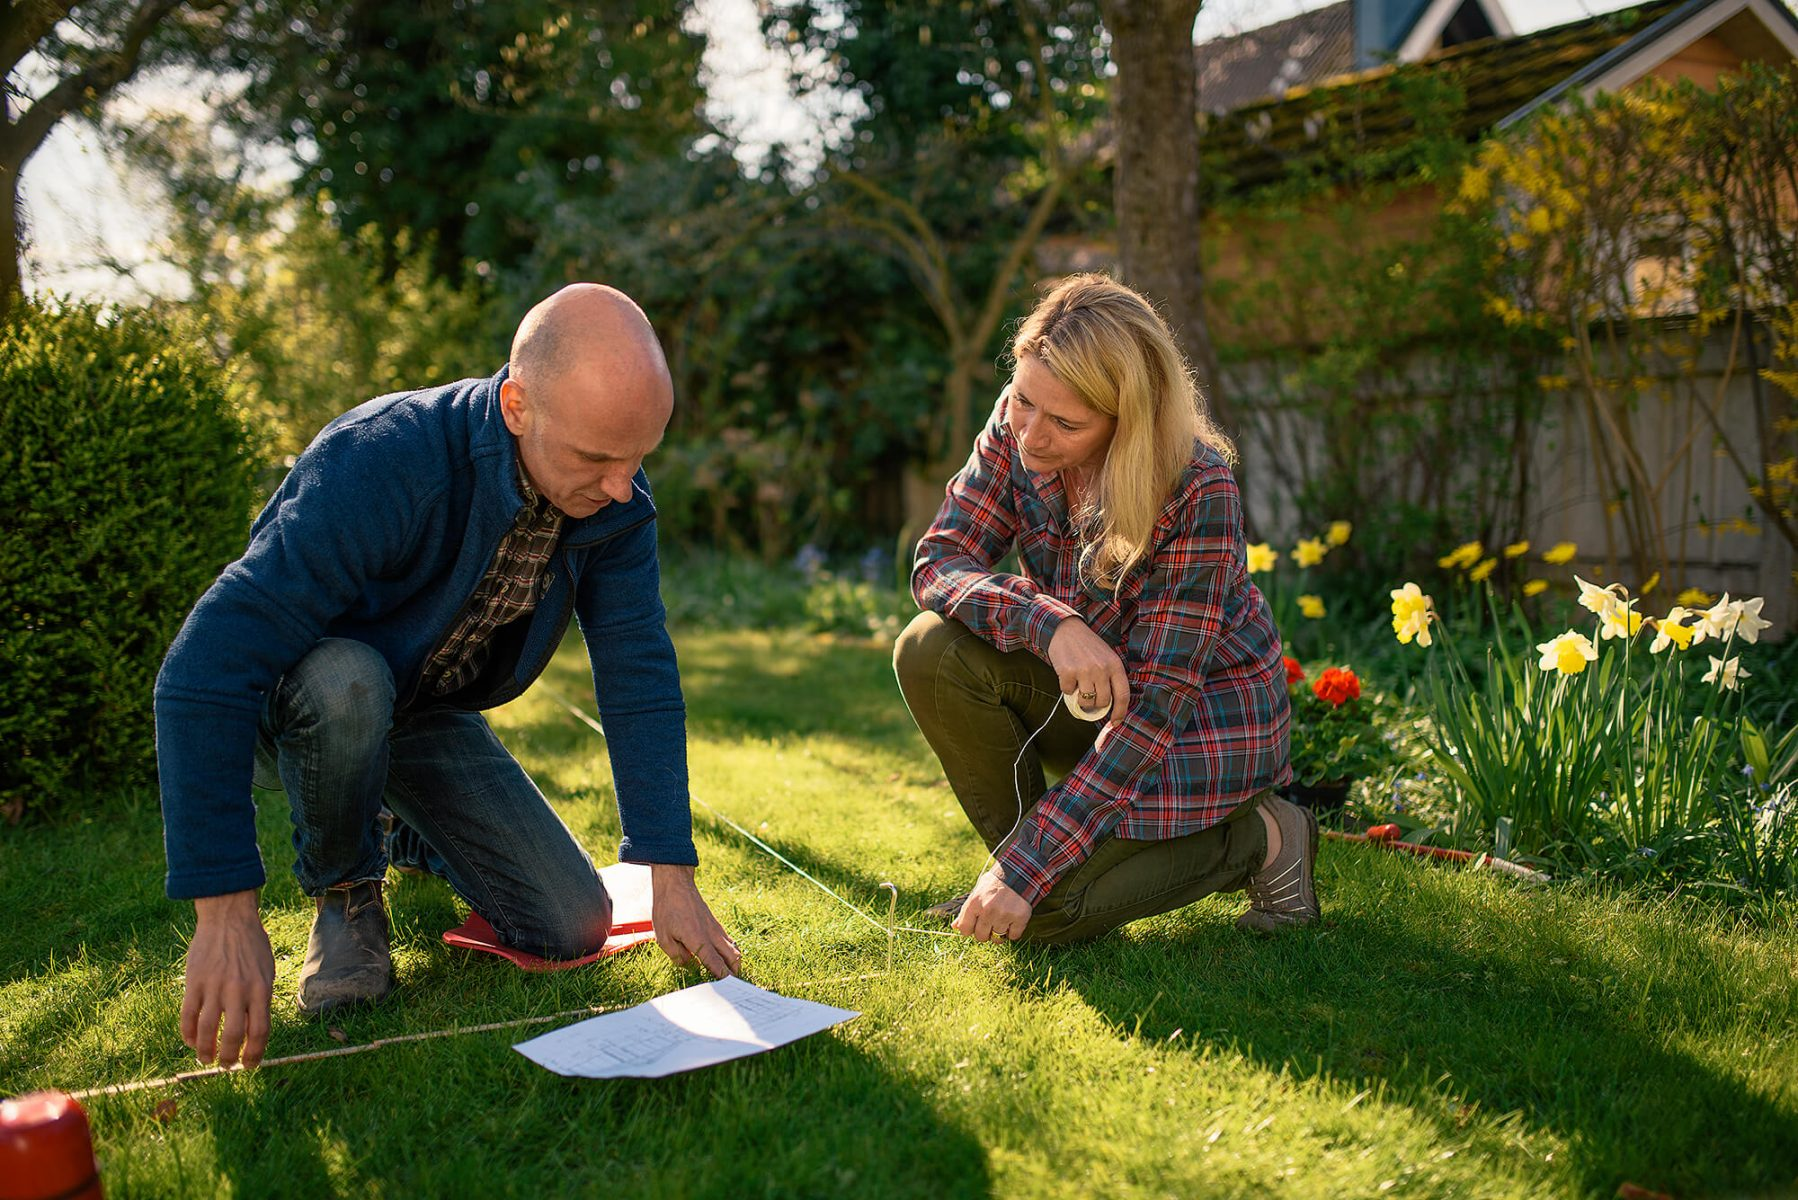 Couple planning a orangery in their garden. Looking happy.